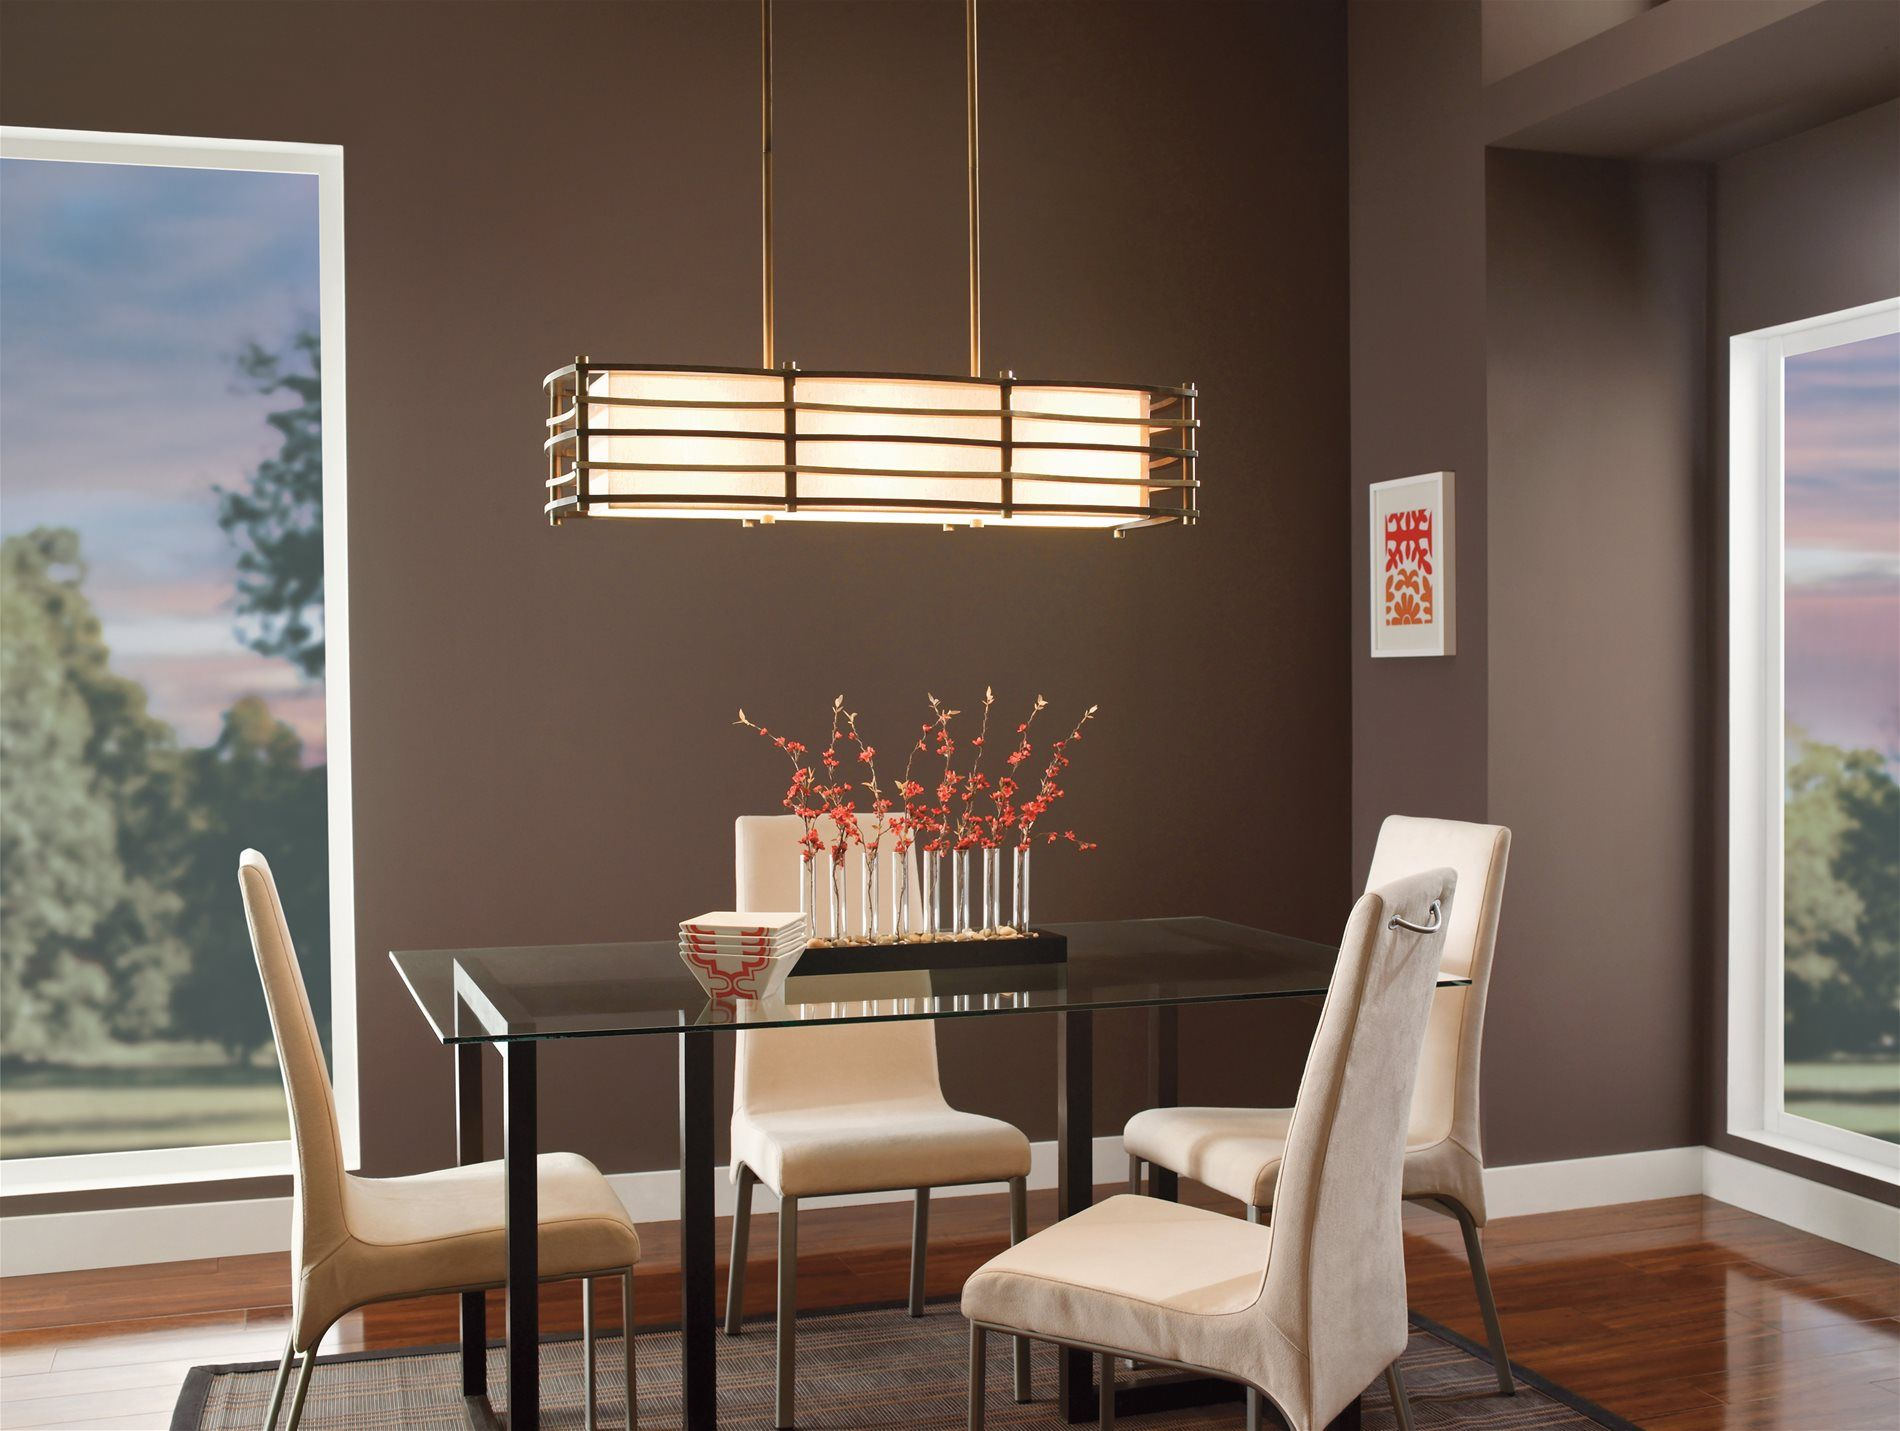 Kichler Dining Room Lighting Delectable South Shore Decorating Kichler Lighting 42061Cmz Moxie Design Ideas